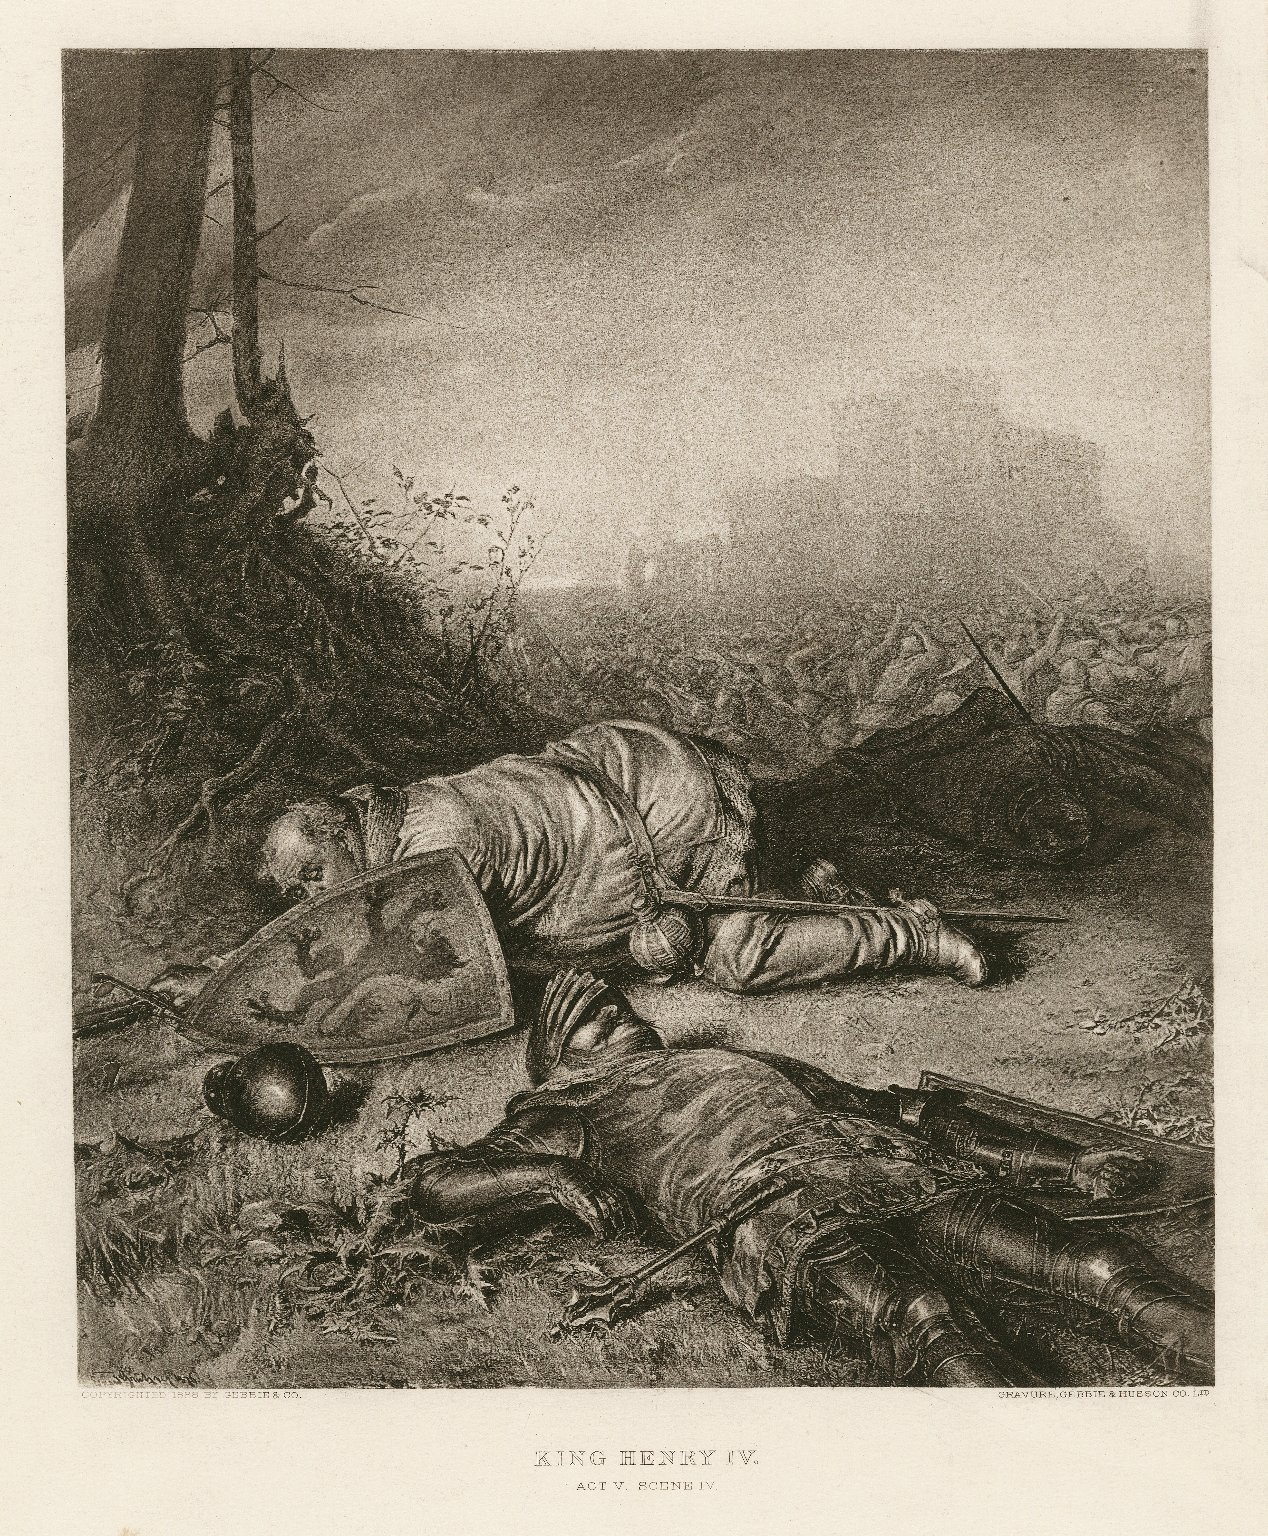 King Henry the fourth, first part, the Battle of Shrewsbury ... [act V, scene 4] [graphic].